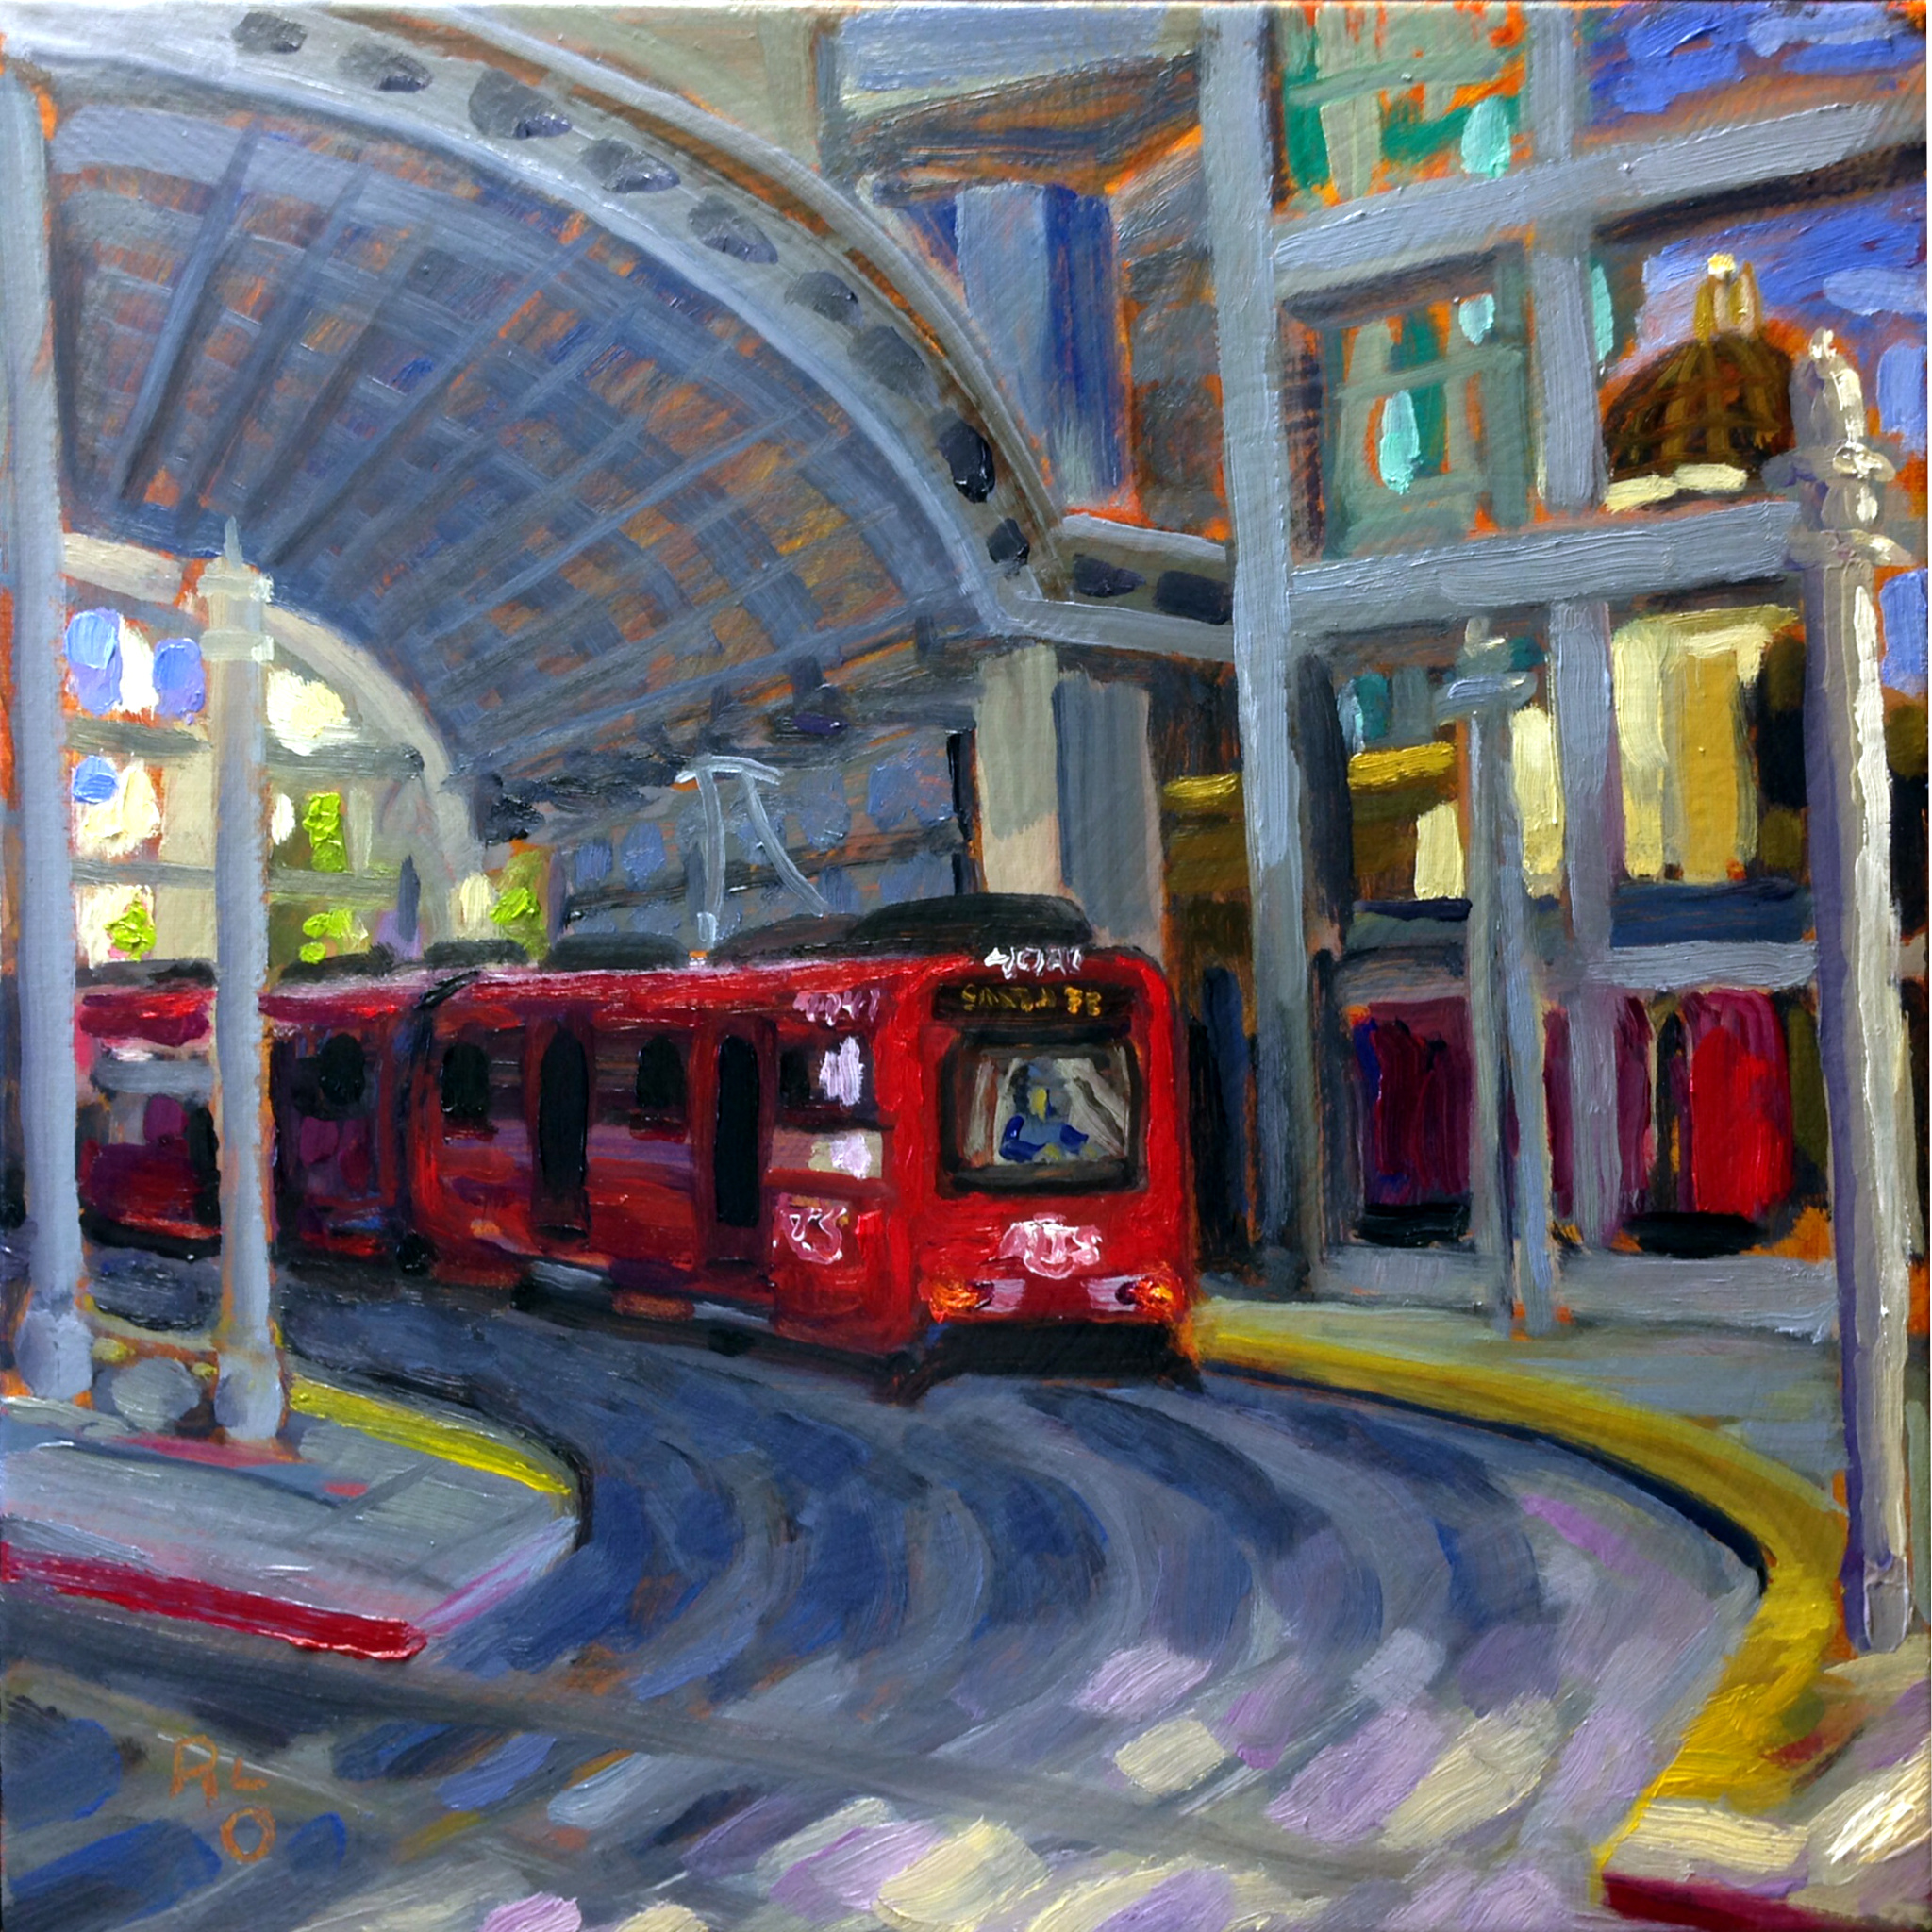 Santa Fe Trolley Depot as painted by California artist, Ronald Lee Oliver